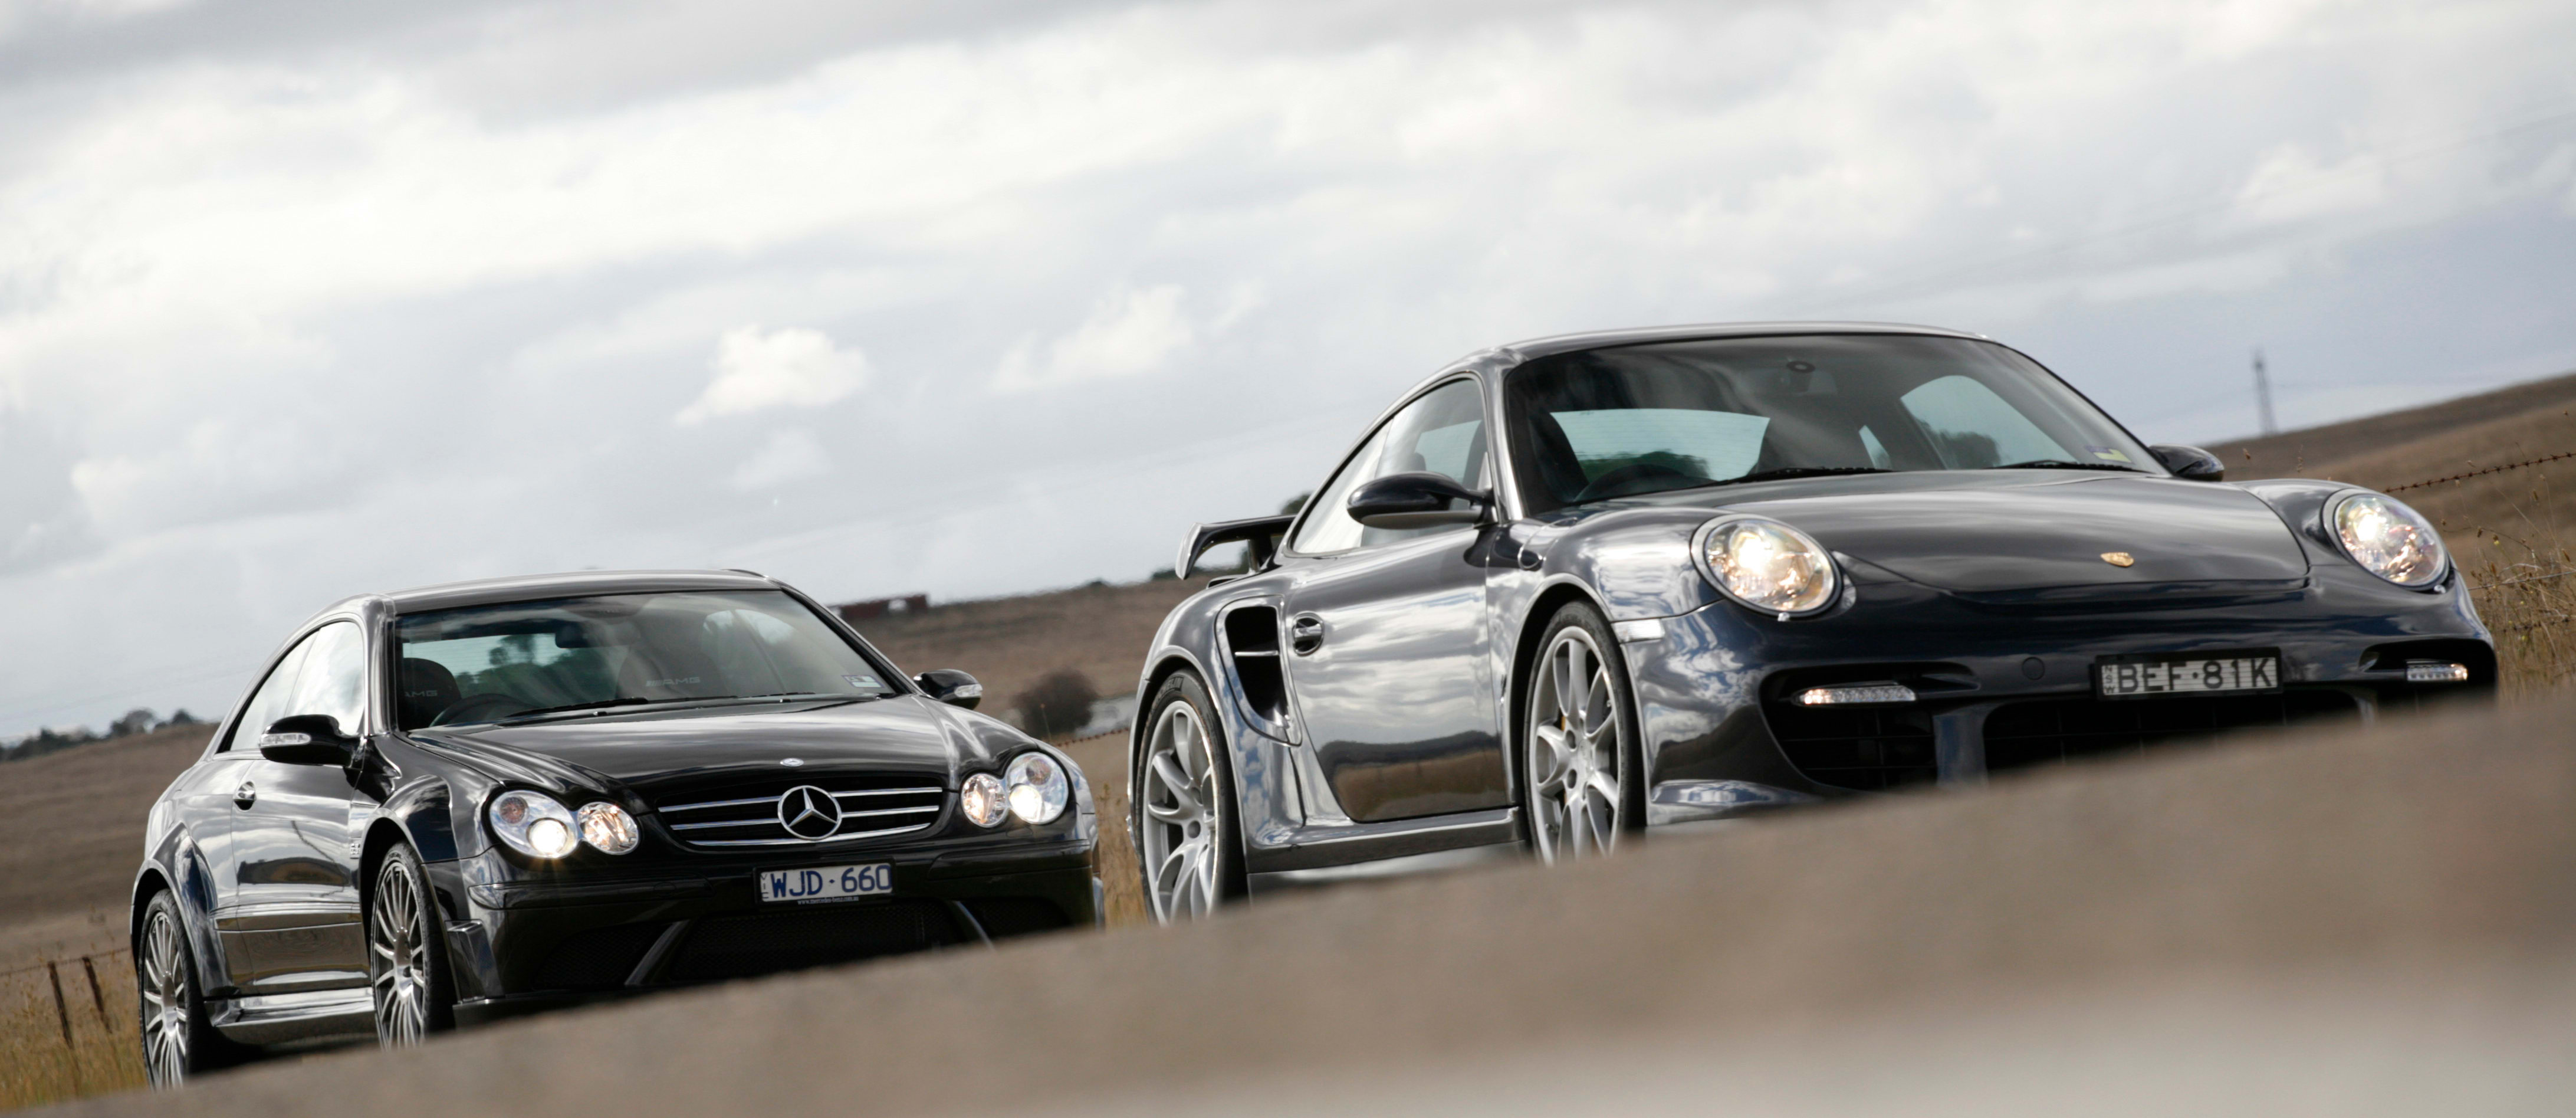 This month in MOTOR 13 years ago: 911 GT2 v CLK63 Black Series